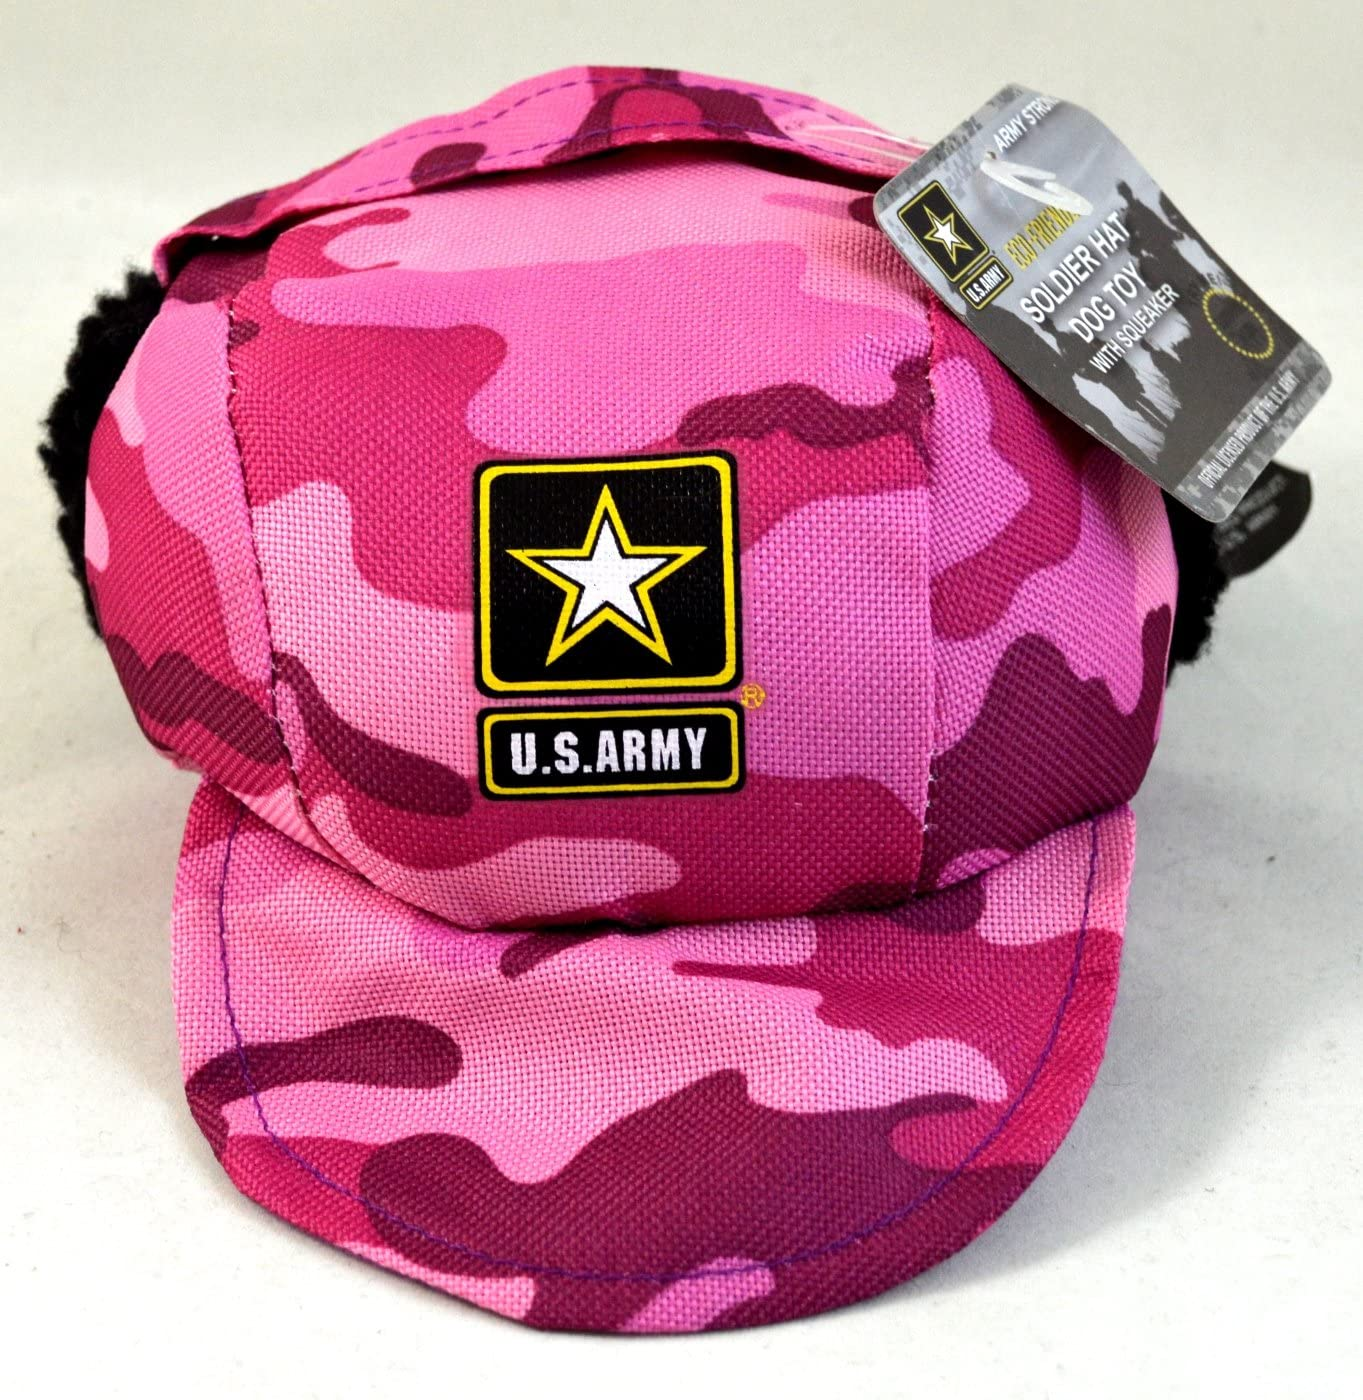 US ARMY U.S Army with Army Star ODG Officially Licensed Baseball Cap Hat